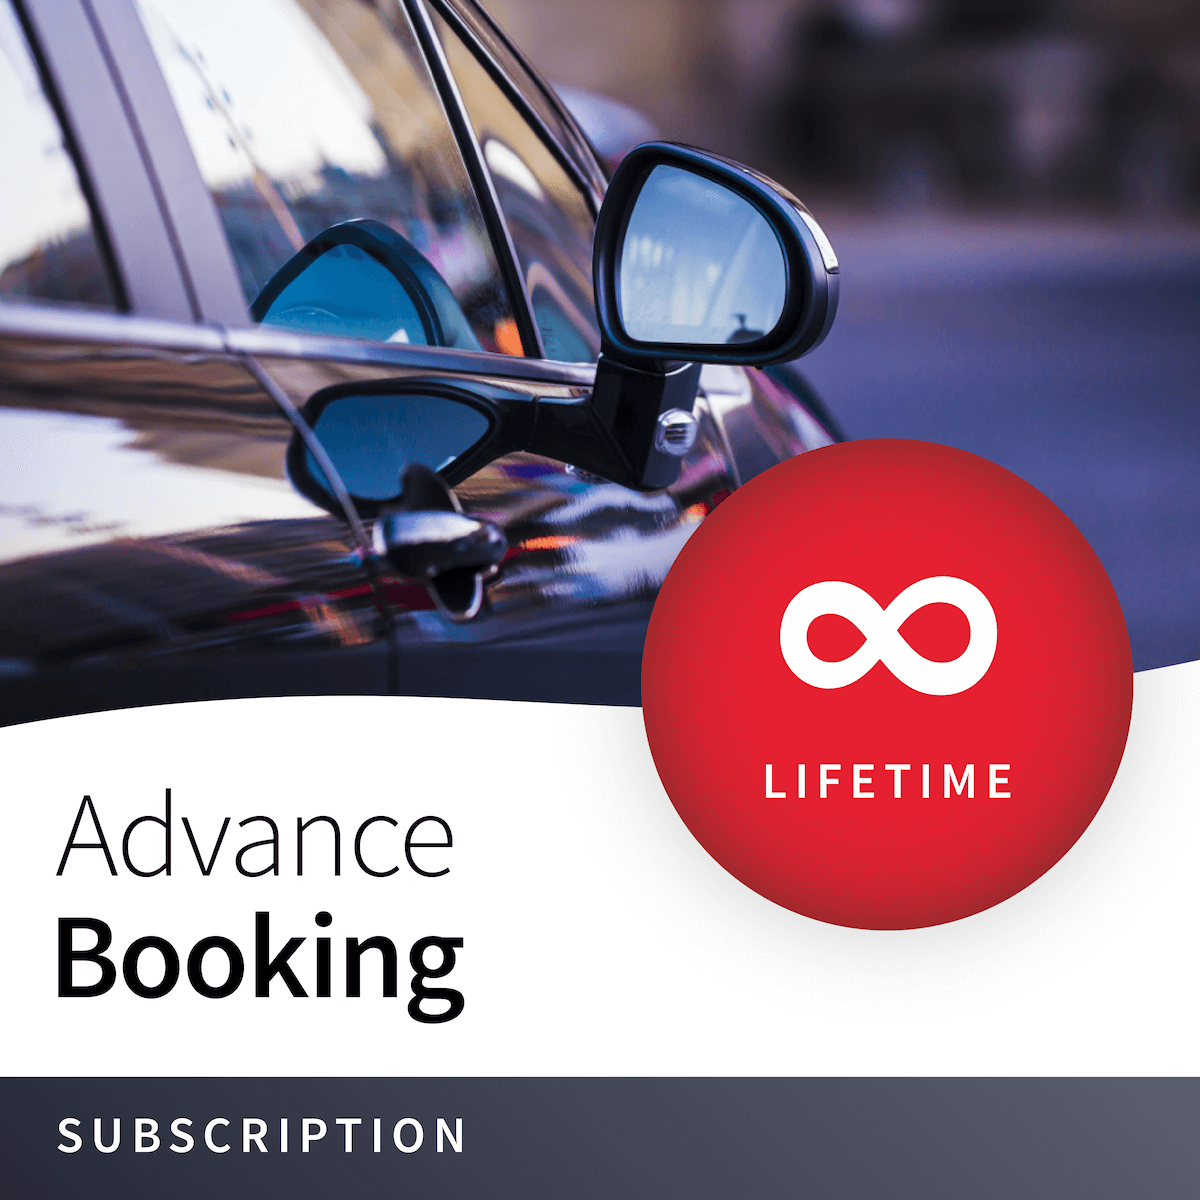 Priority Advance Booking – Lifetime 13